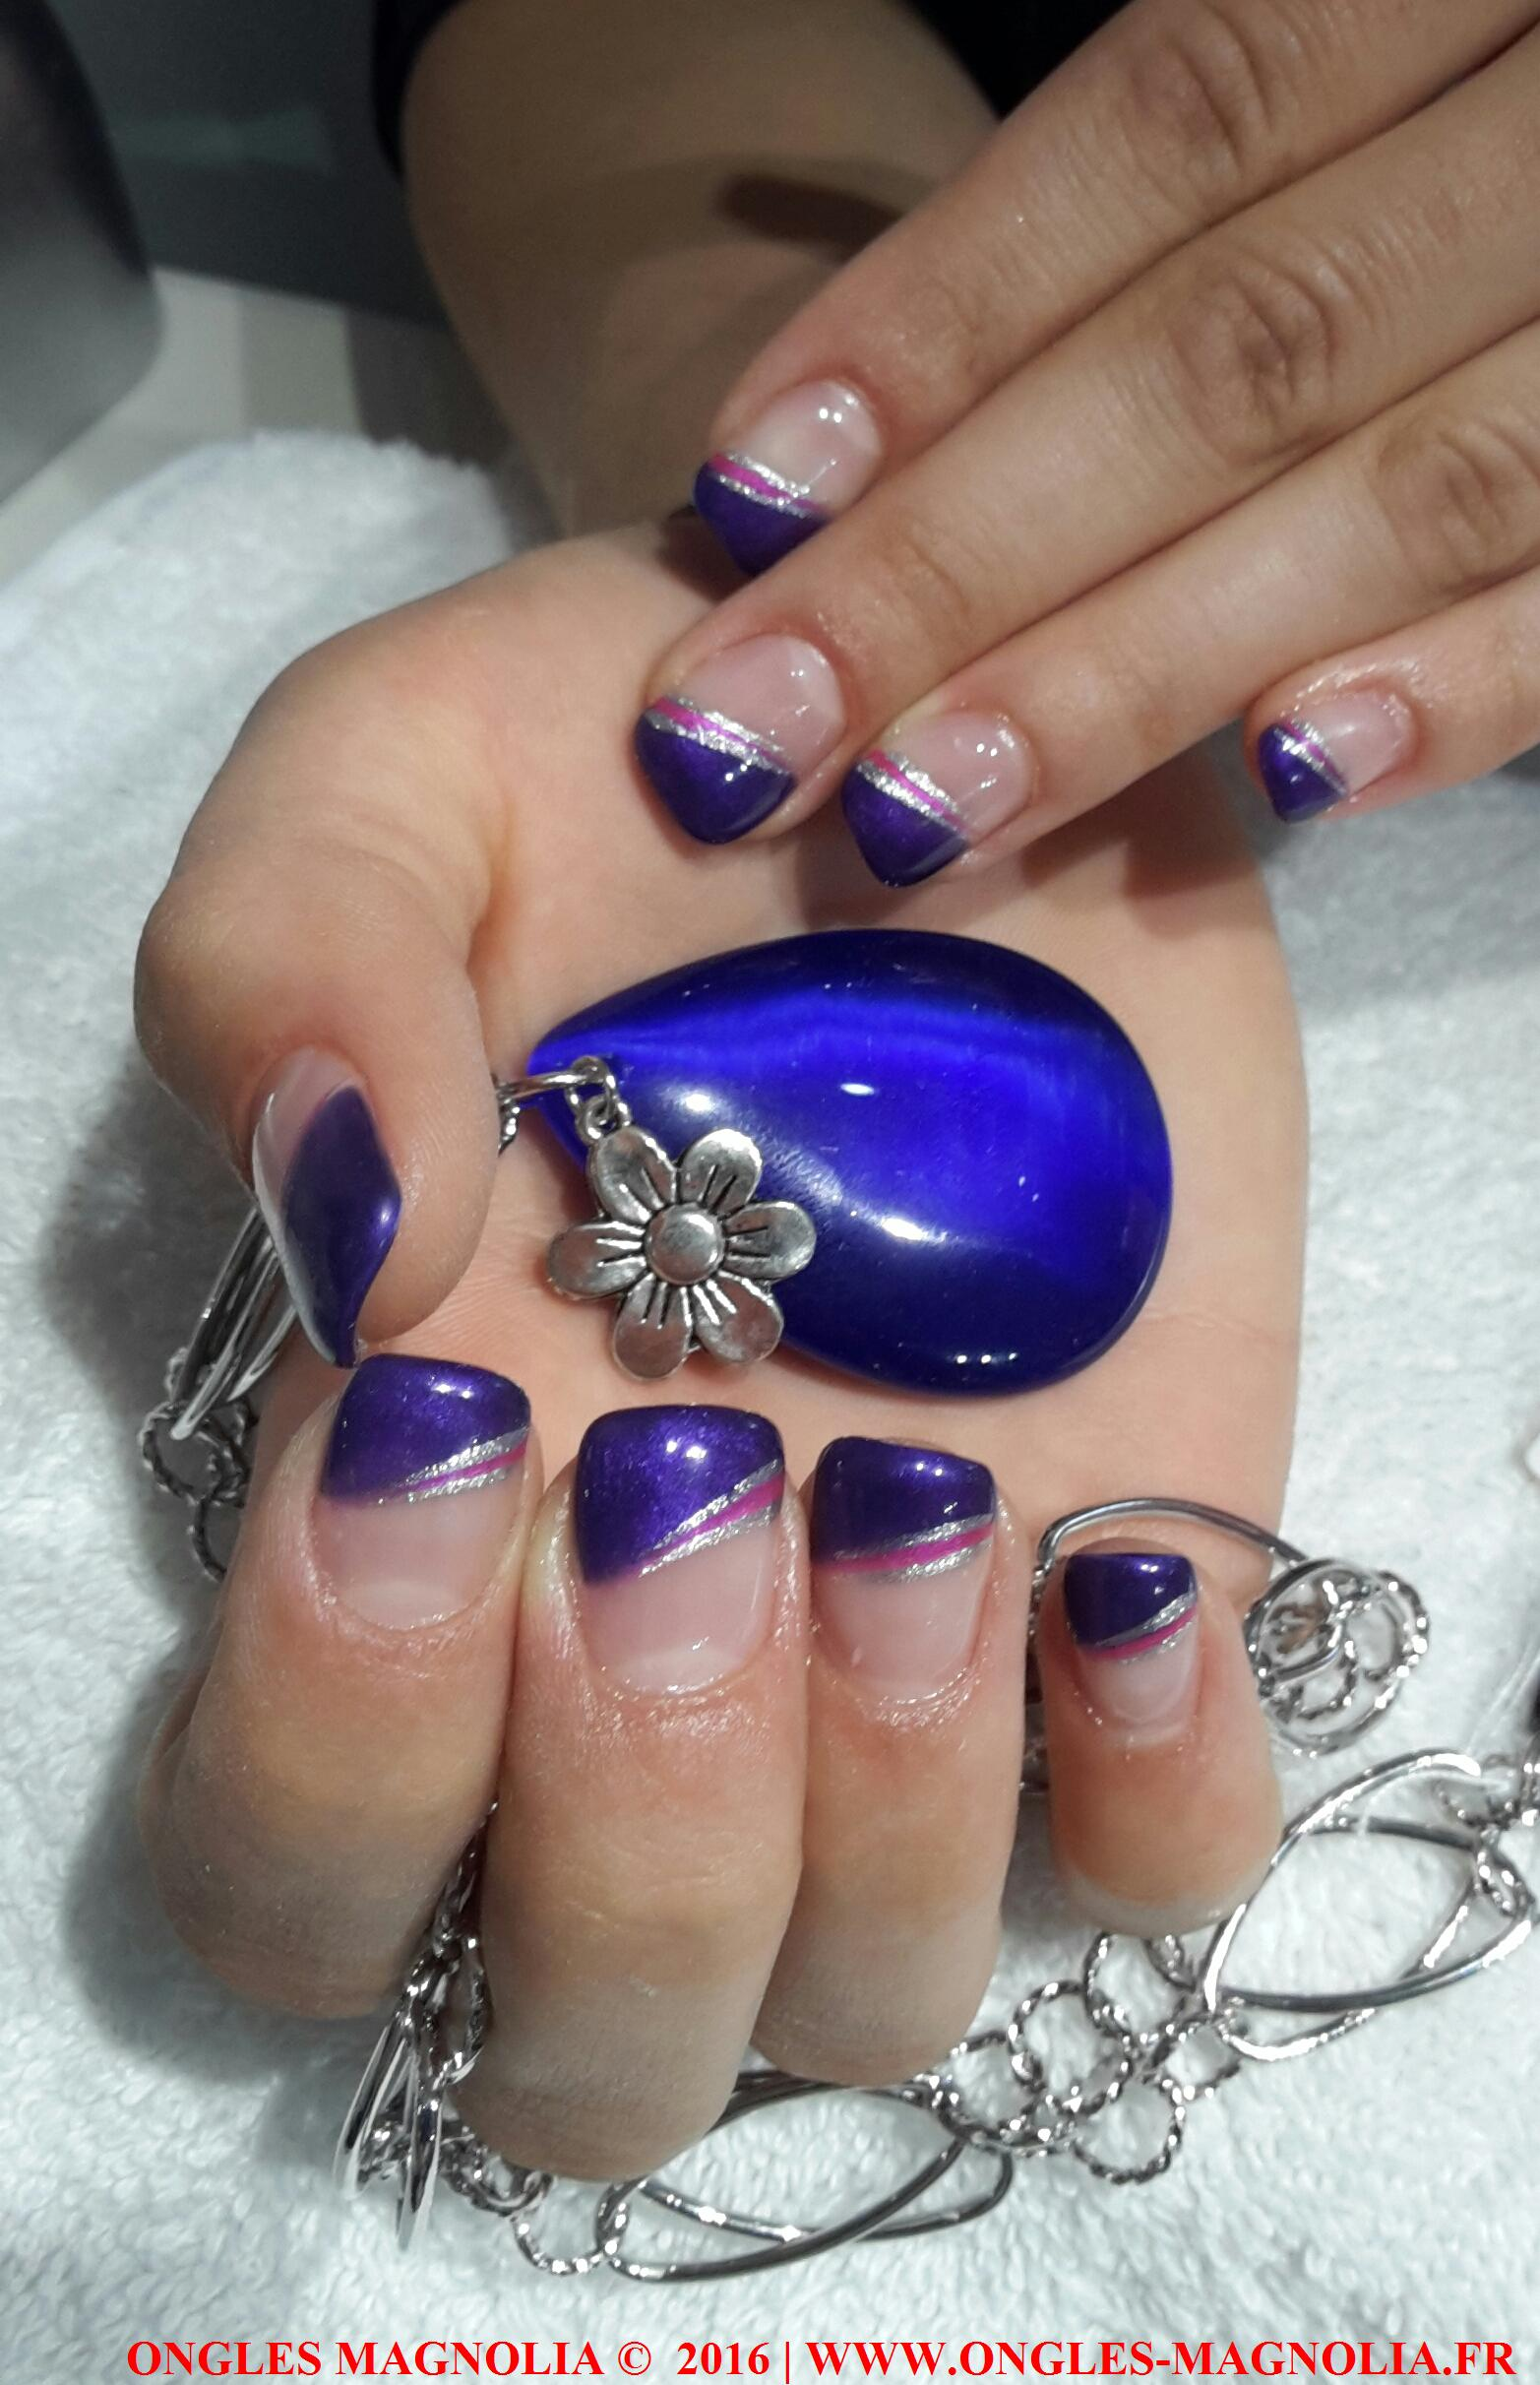 Pose-ongles-nail-art-neuville-sur-saone-lyon-ongles magnolia 022016